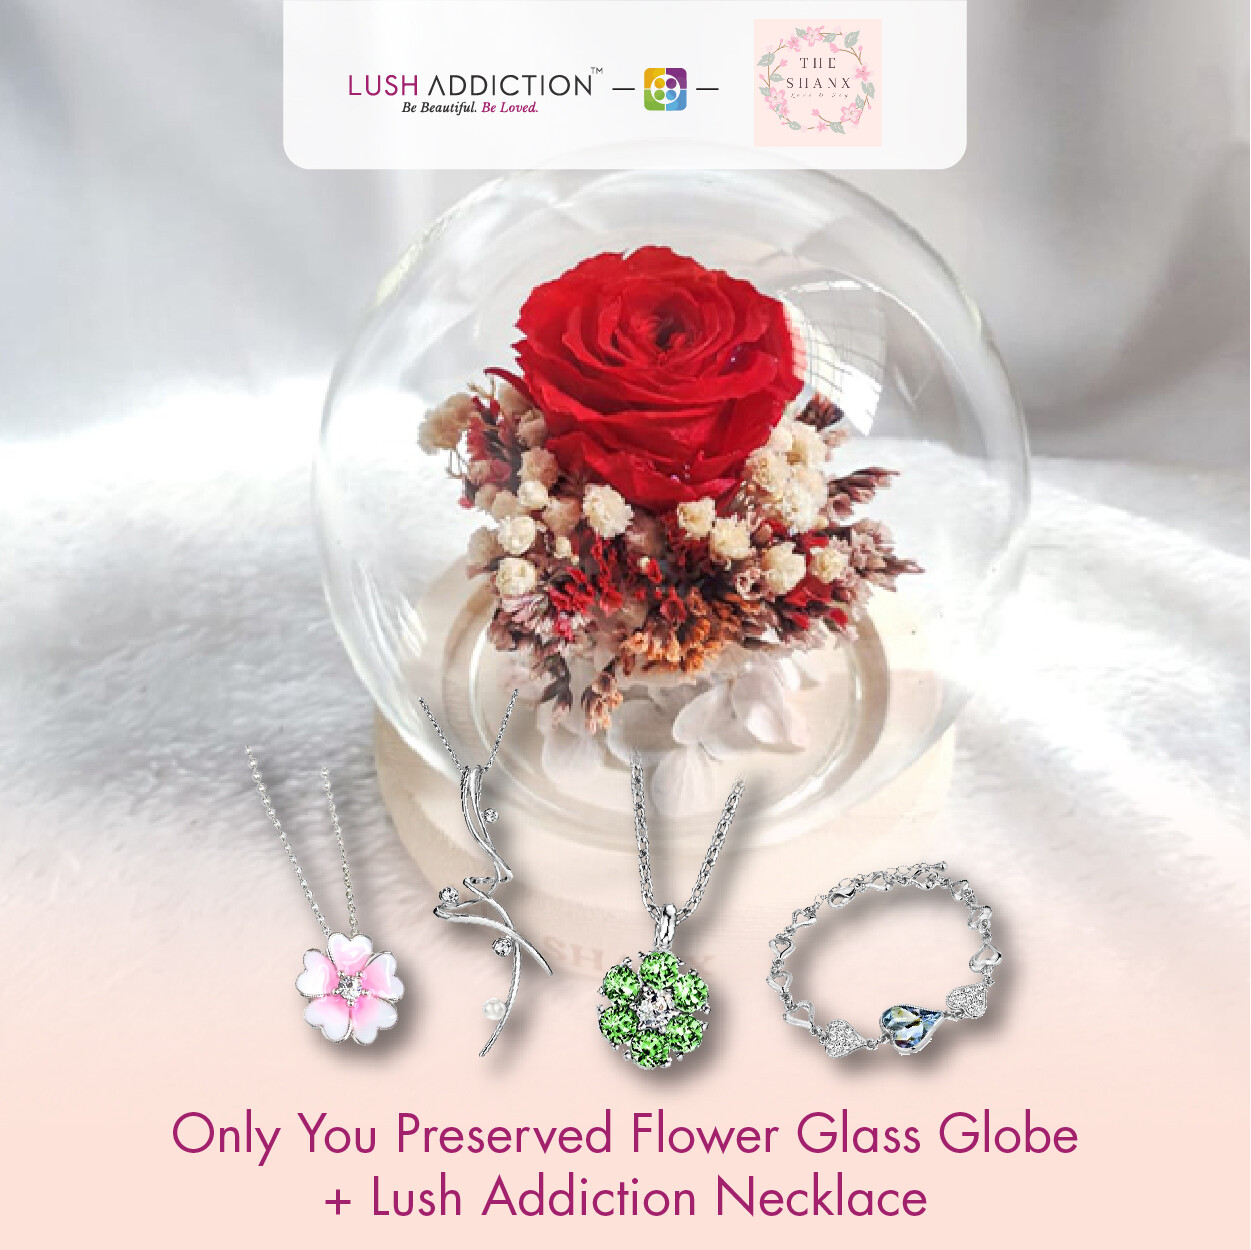 Only You Preserved Flower Glass Globe + Lush Addiction Necklace (By: The Shanx Florist from Melacca)